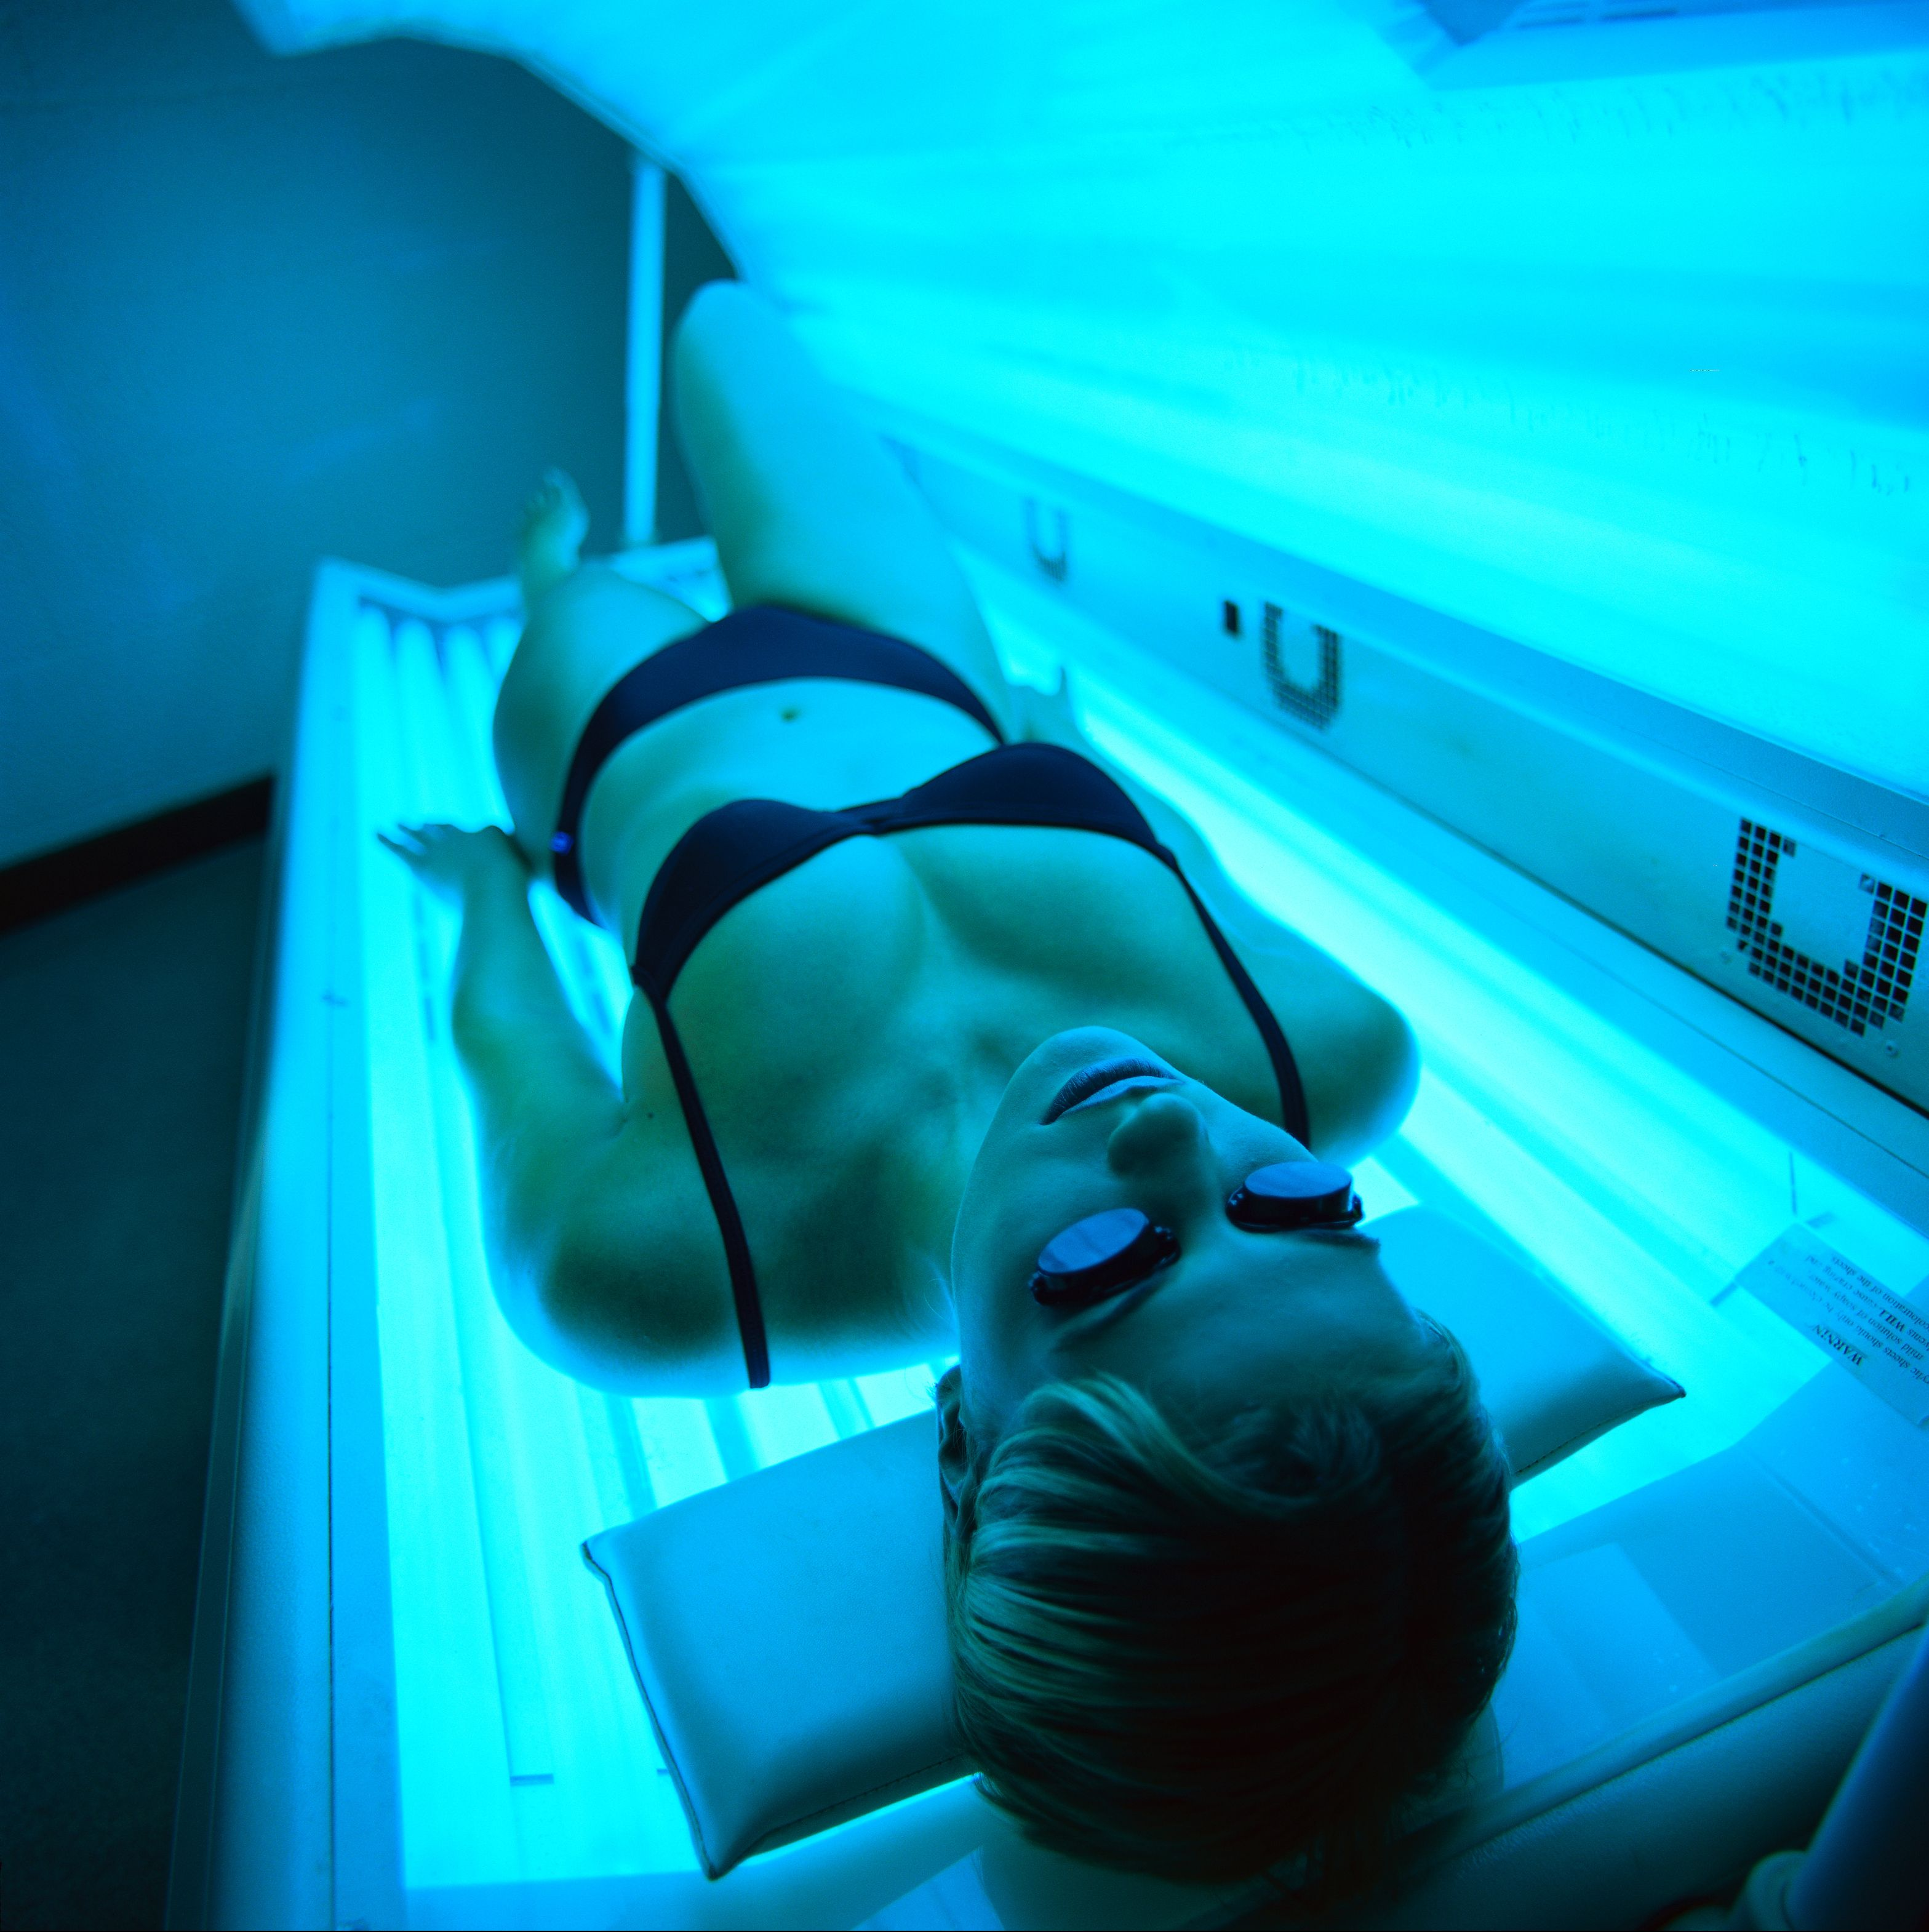 This Woman's Disturbing Skin Cancer Selfie Highlights Dangers of Tanning Beds